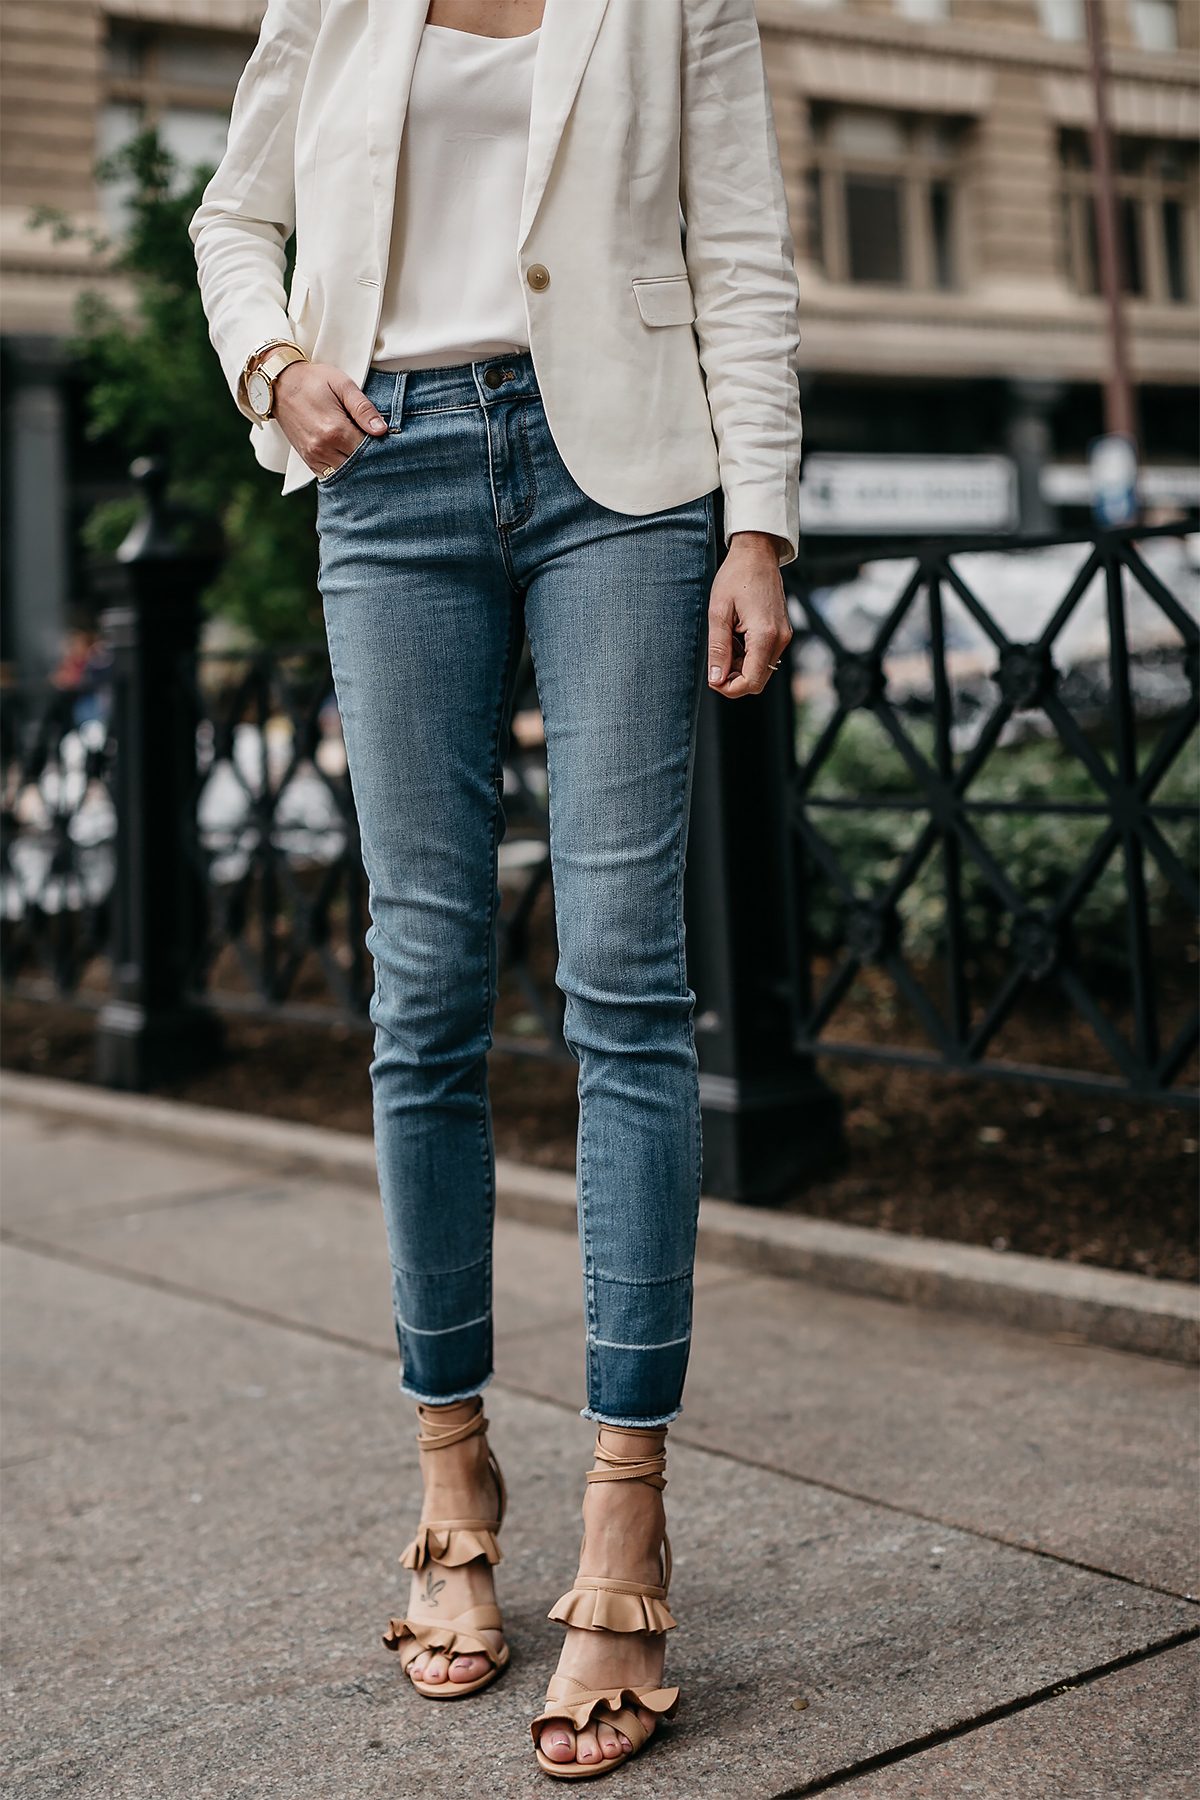 Woman Wearing Ann Taylor White Blazer White Cami Raw Hem Skinny Jeans Tan Ruffle Lace Up Sandals Fashion Jackson Dallas Blogger Fashion Blogger Street Style